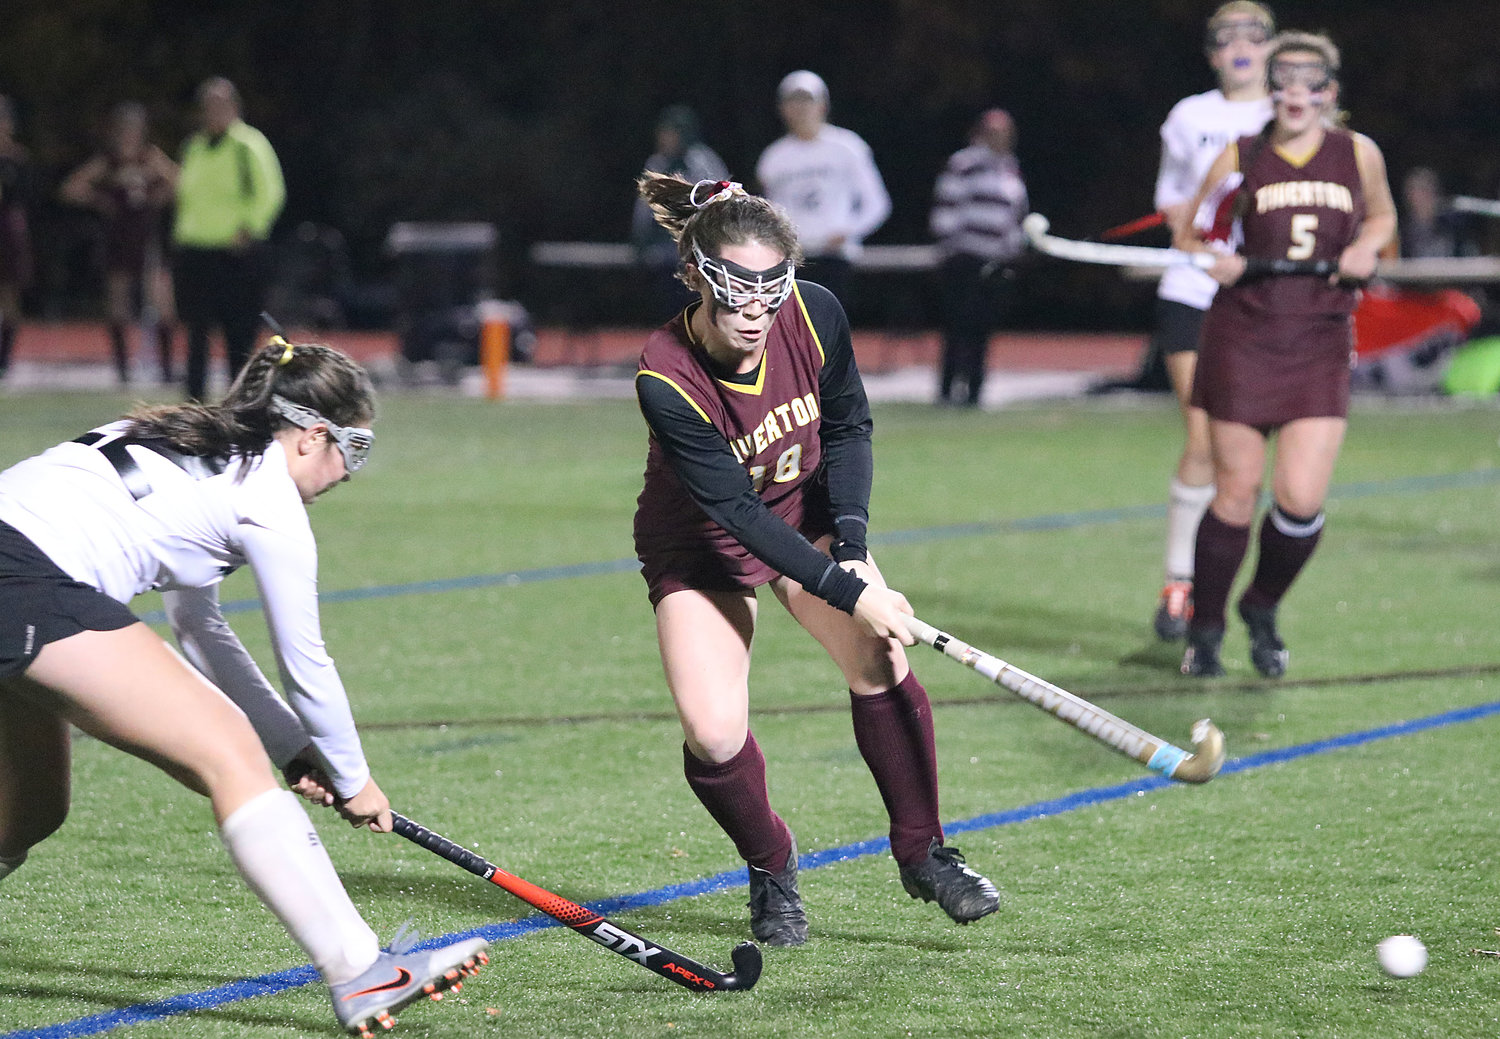 Elise Flanagan battles against a Pilgrim player for the ball during Sunday's Division III state championship game. Flanagan would score Tiverton's lone goal in their 3-1 shootout loss to the Patriots.